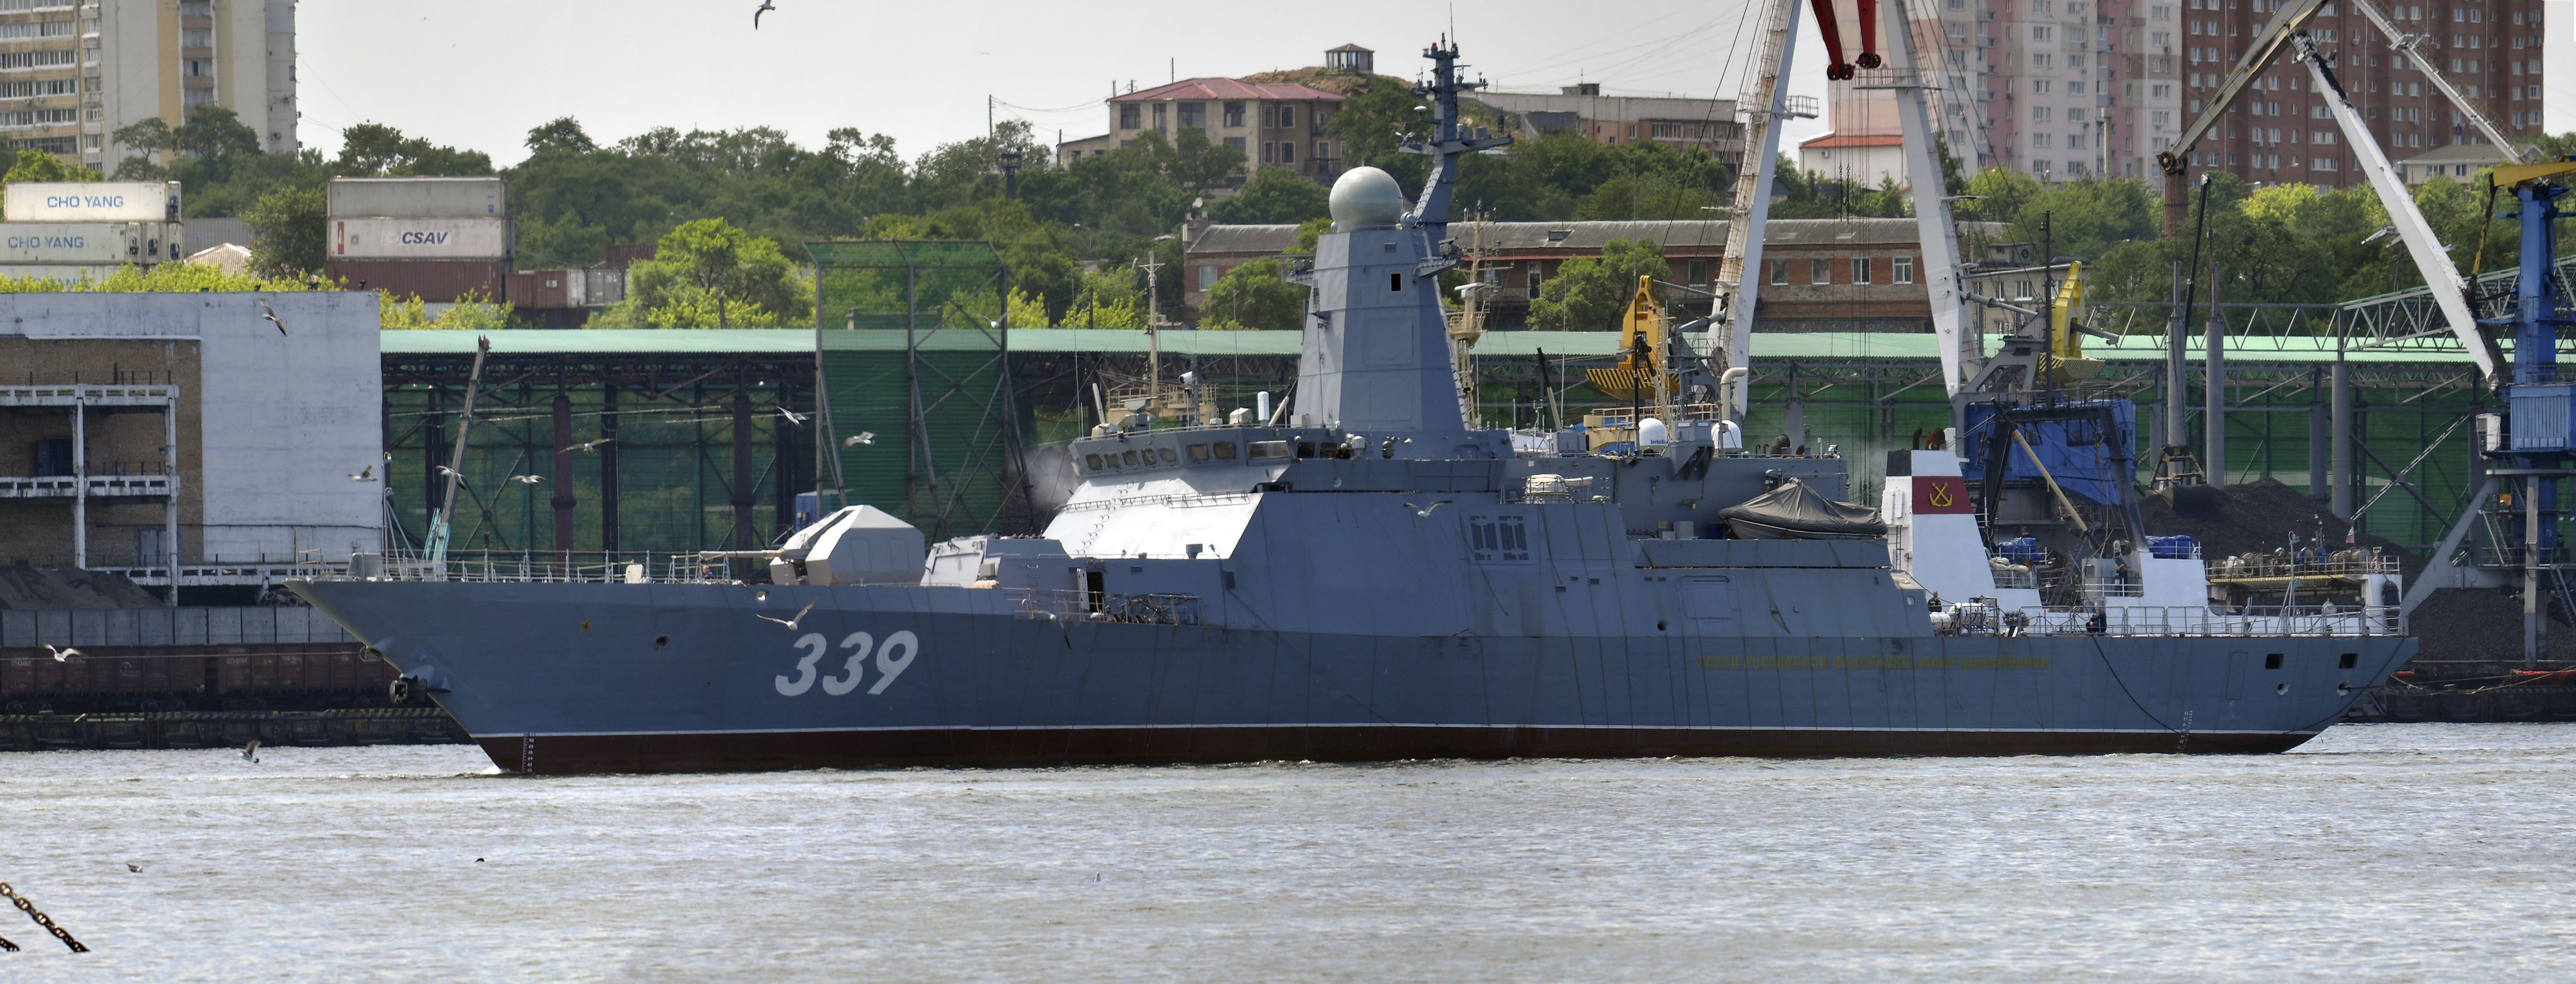 Project 2038.0: Steregushchy Corvette - Page 39 20-8757261-339